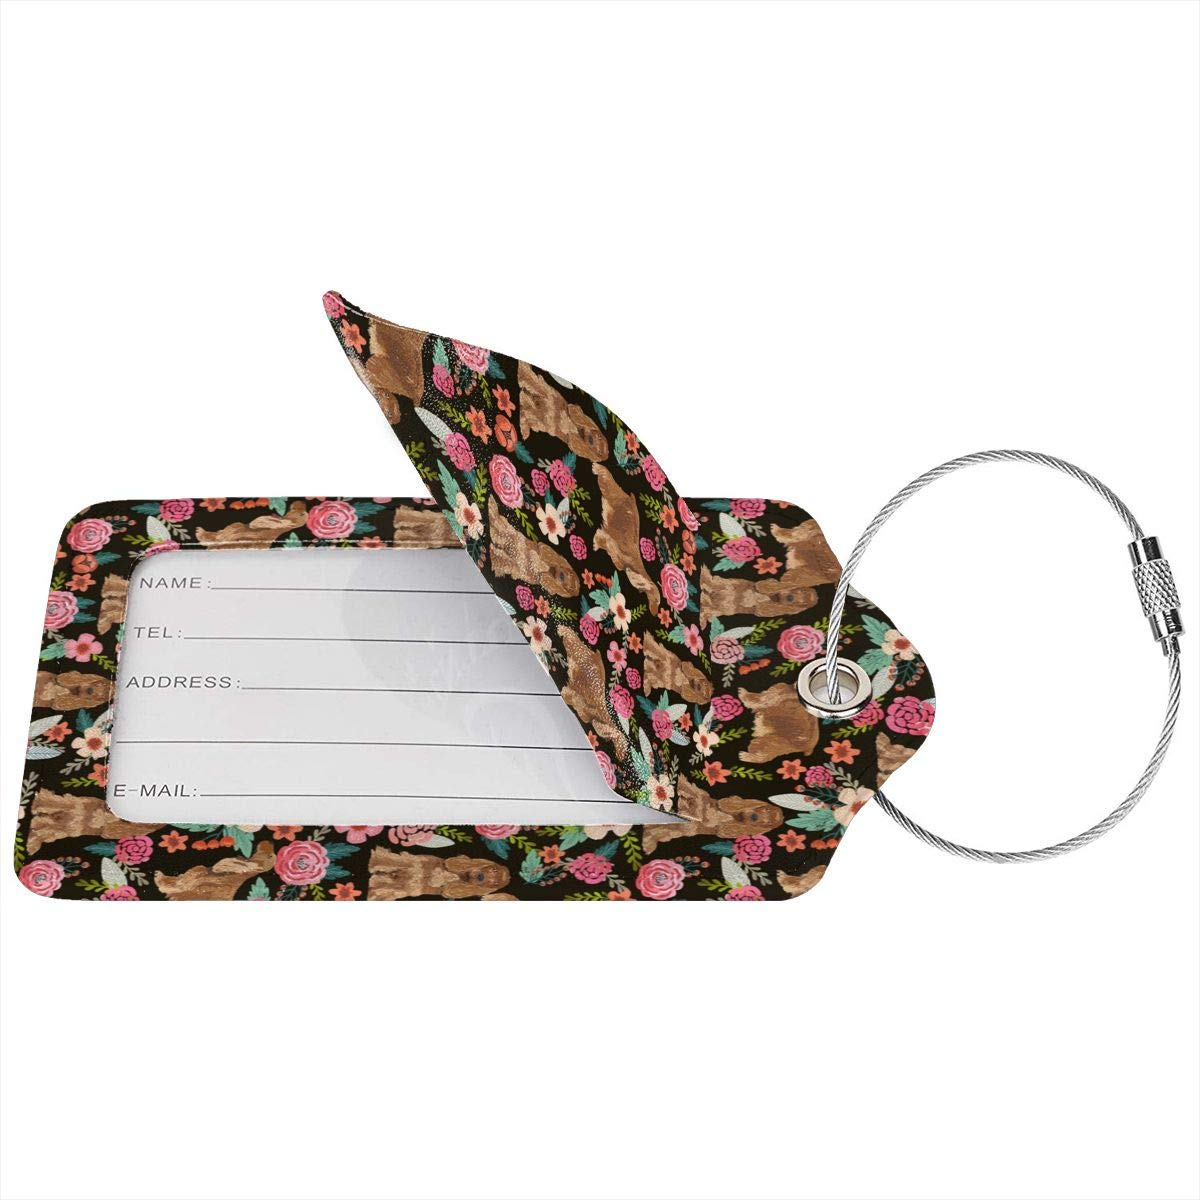 Leather Luggage Tags Full Privacy Cover and Stainless Steel Loop 1 2 4 Pcs Set Cocker Spaniel 2.7 x 4.6 Blank Tag Key Tags for Christmas Birthday Couples Gift